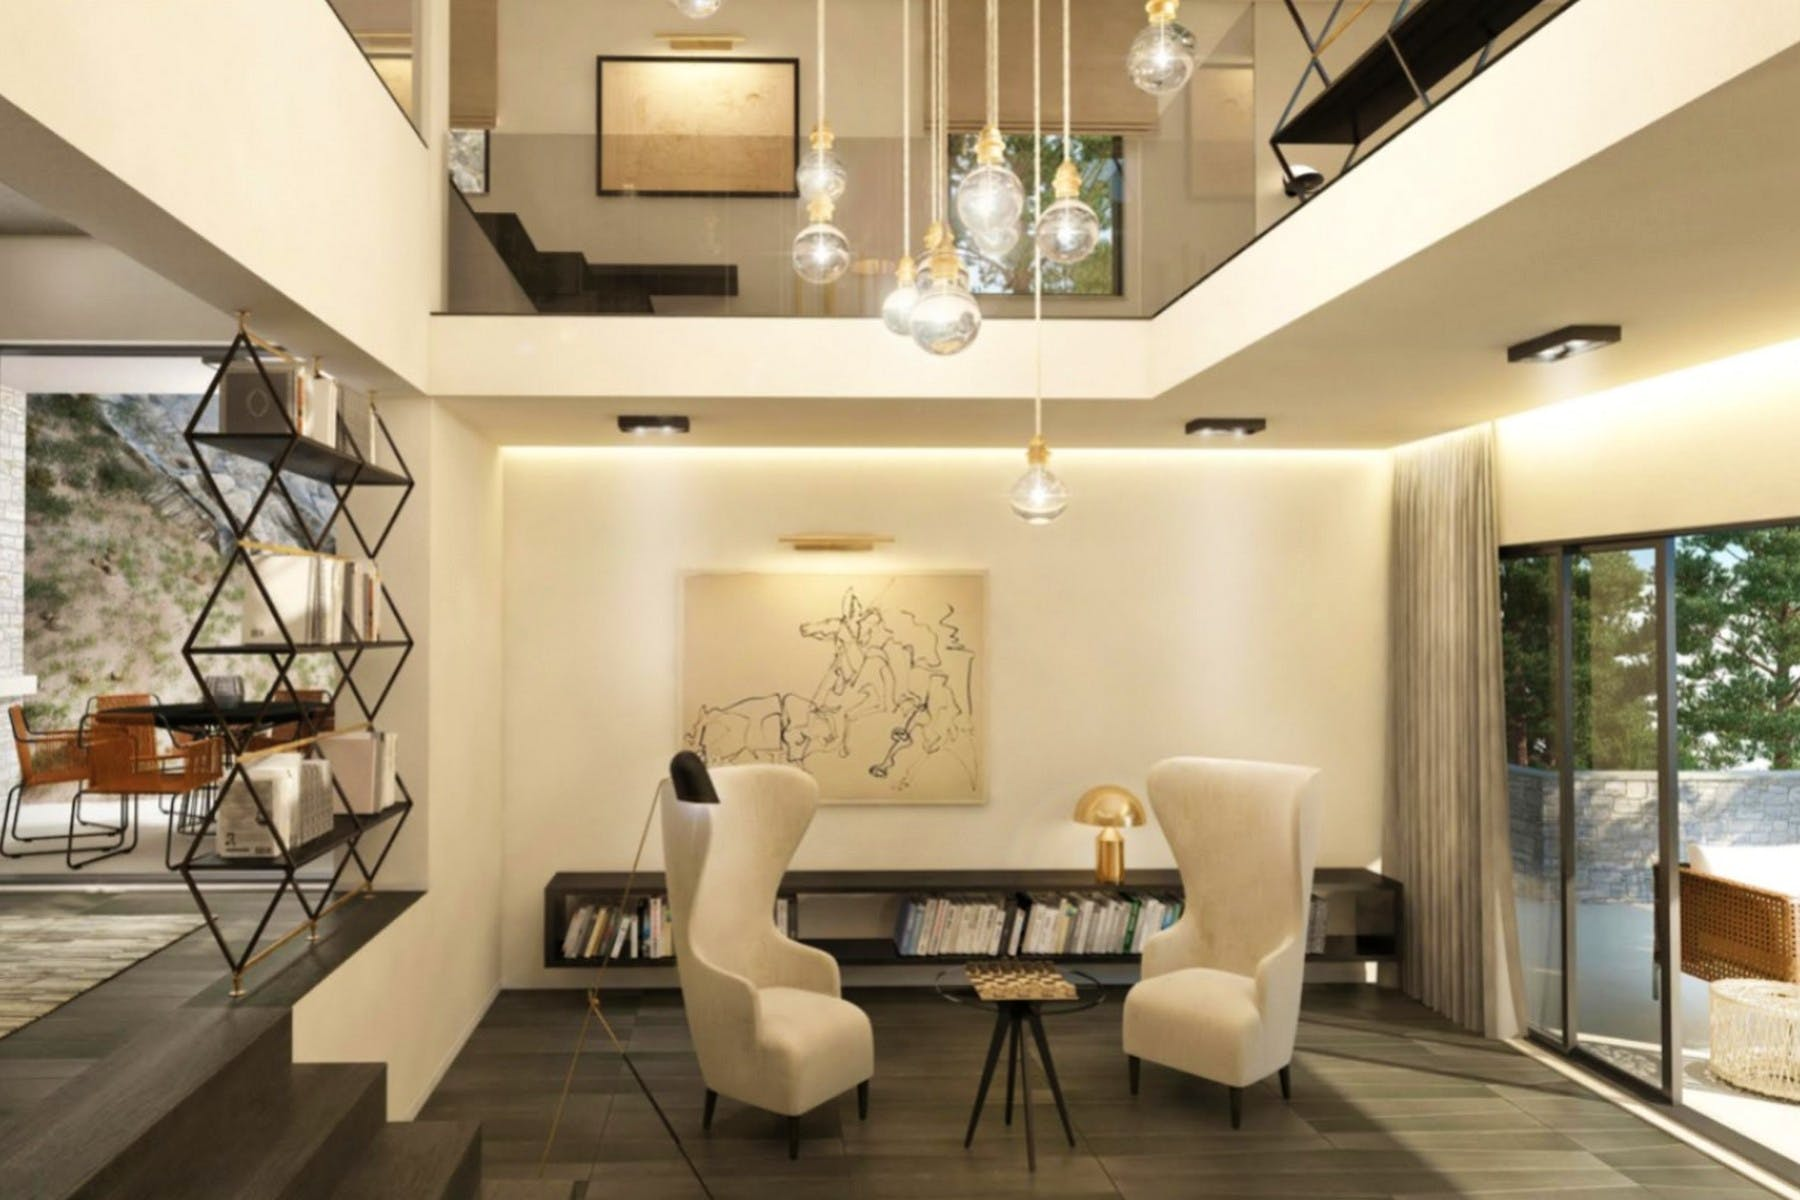 Attractive interior design in the newly constructed villa